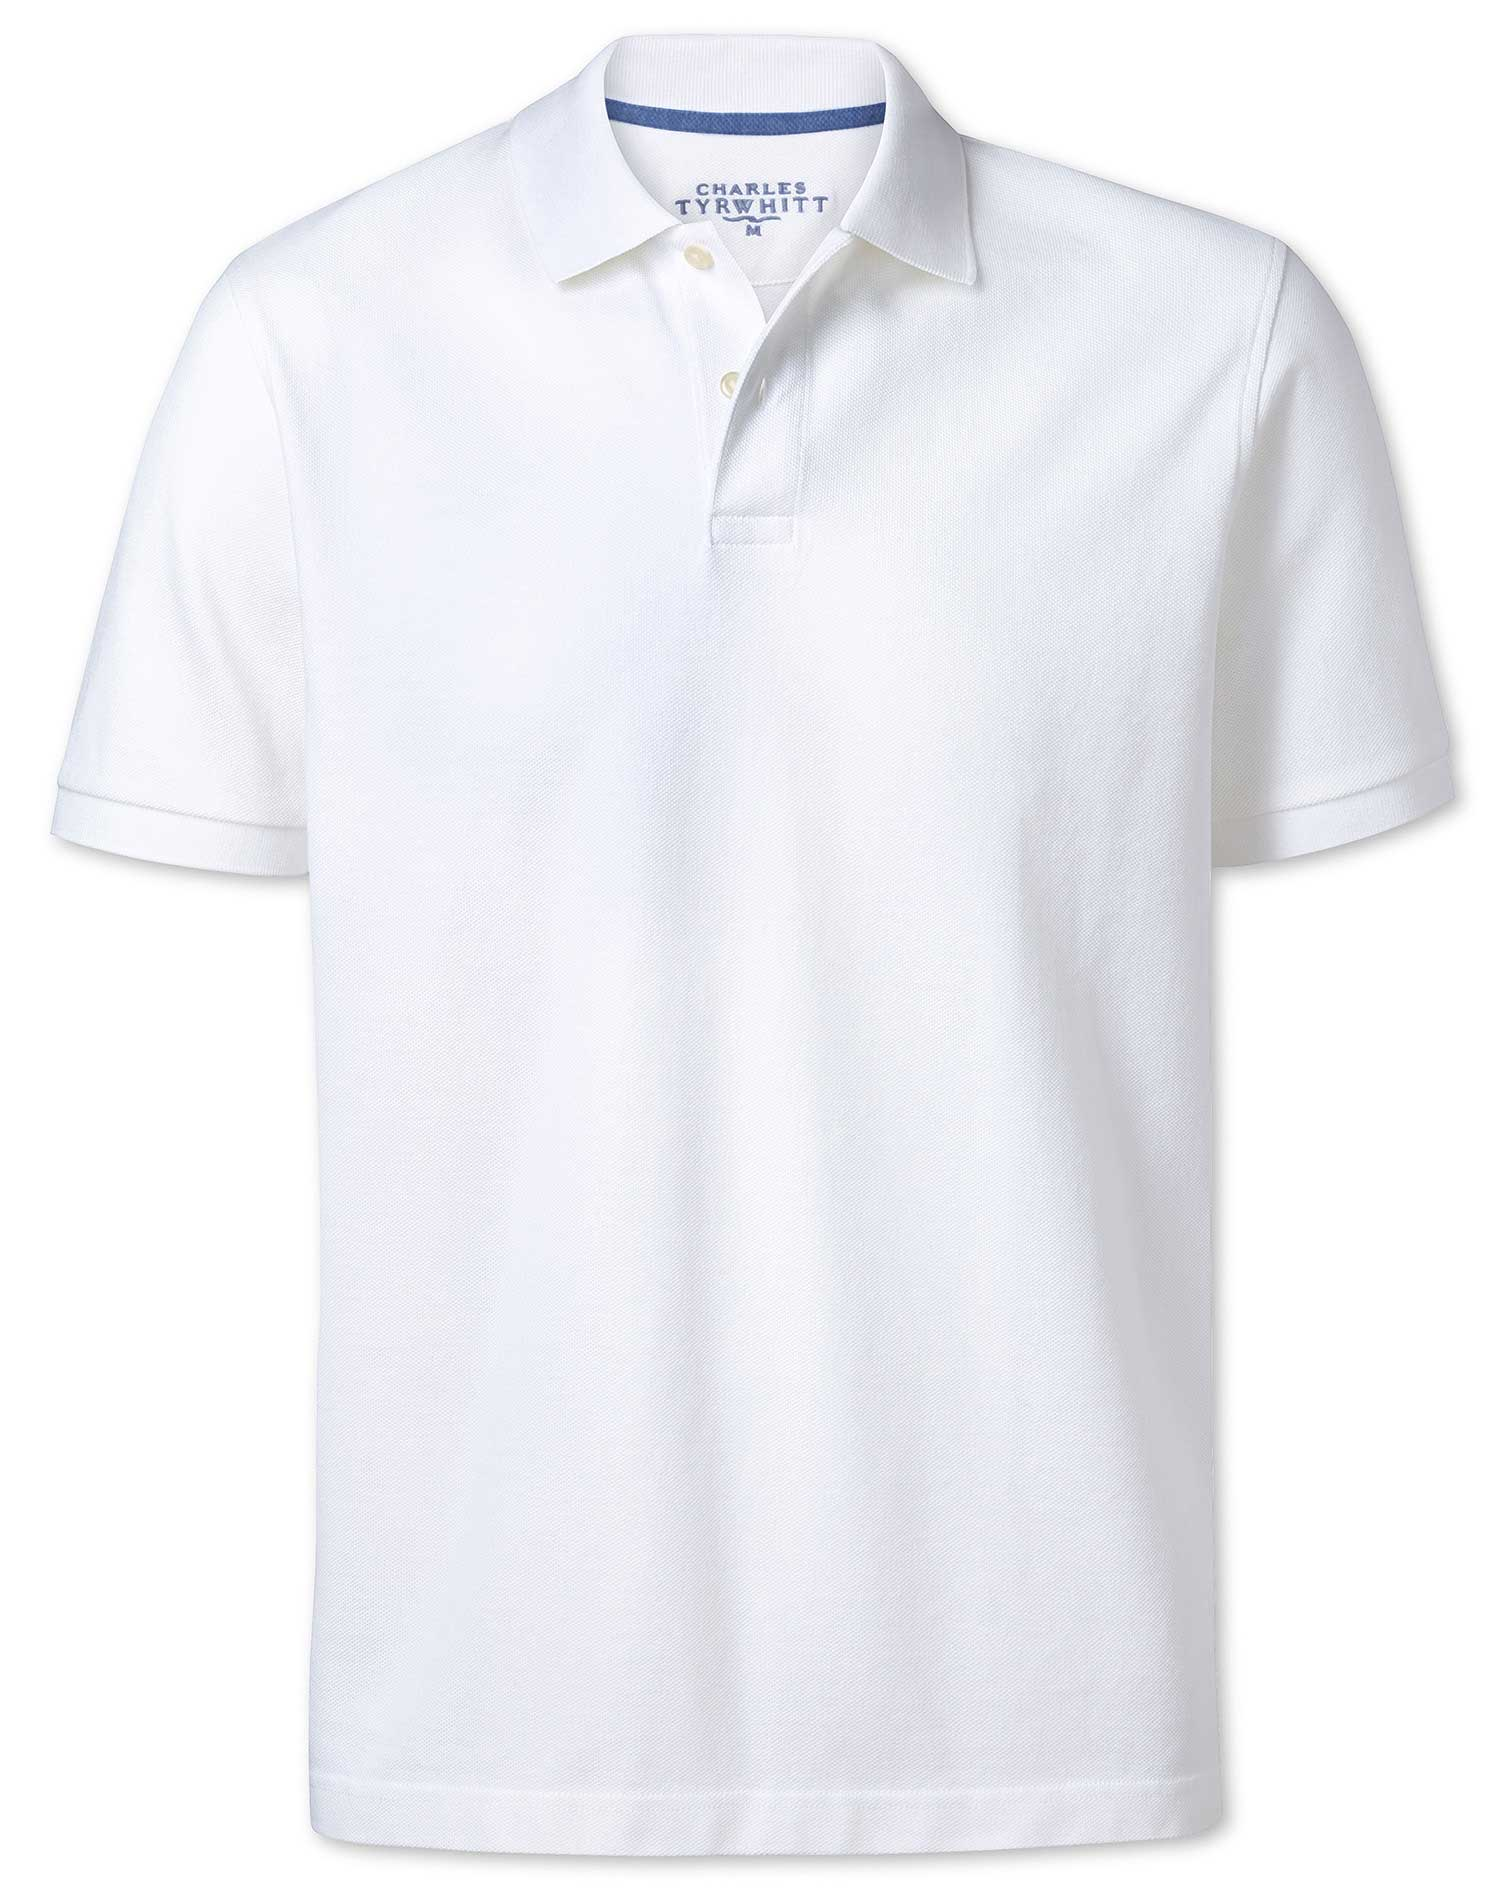 White Pique Cotton Polo Size Small by Charles Tyrwhitt